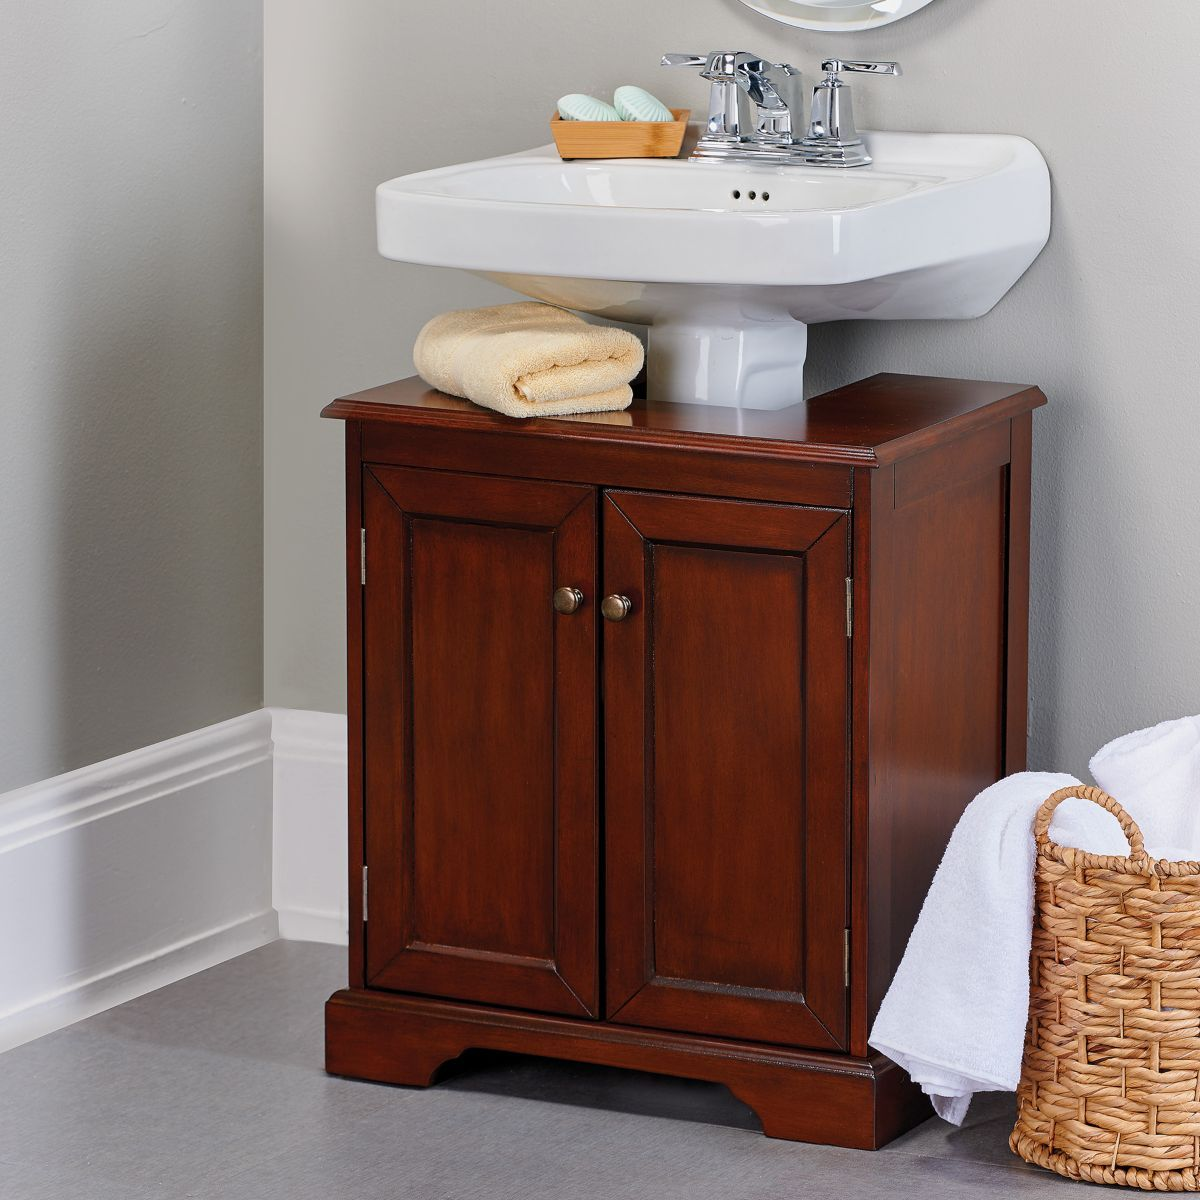 Weatherby Bathroom Pedestal Sink Storage Cabinet | Pedestal sink ...